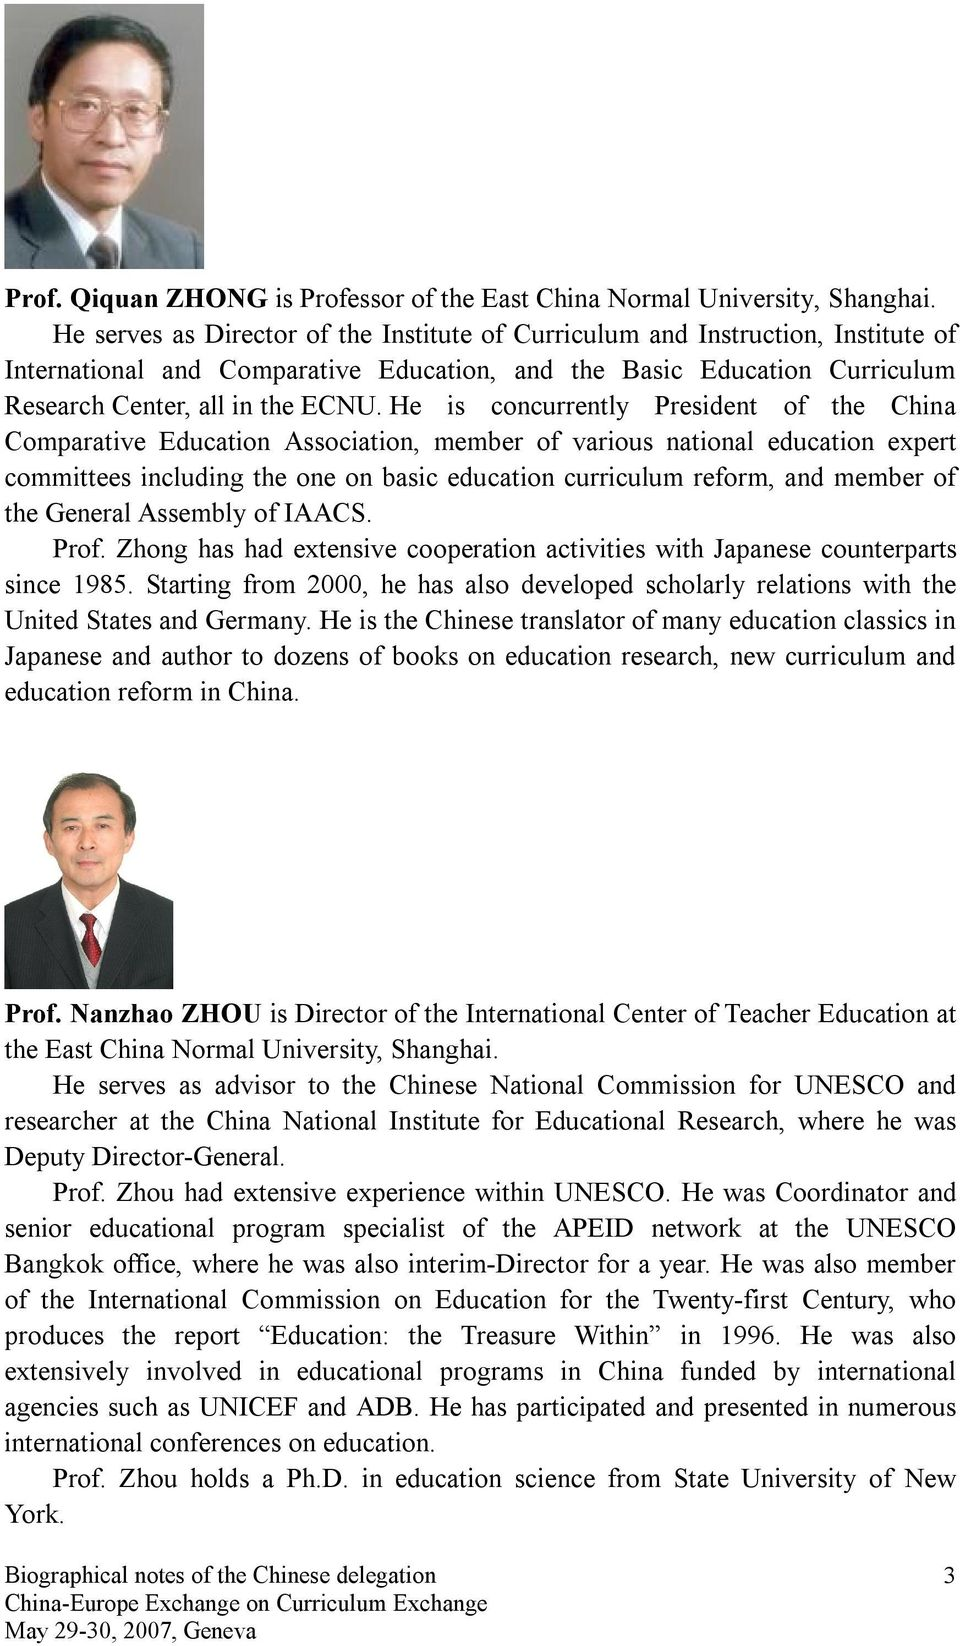 He is concurrently President of the China Comparative Education Association, member of various national education expert committees including the one on basic education curriculum reform, and member